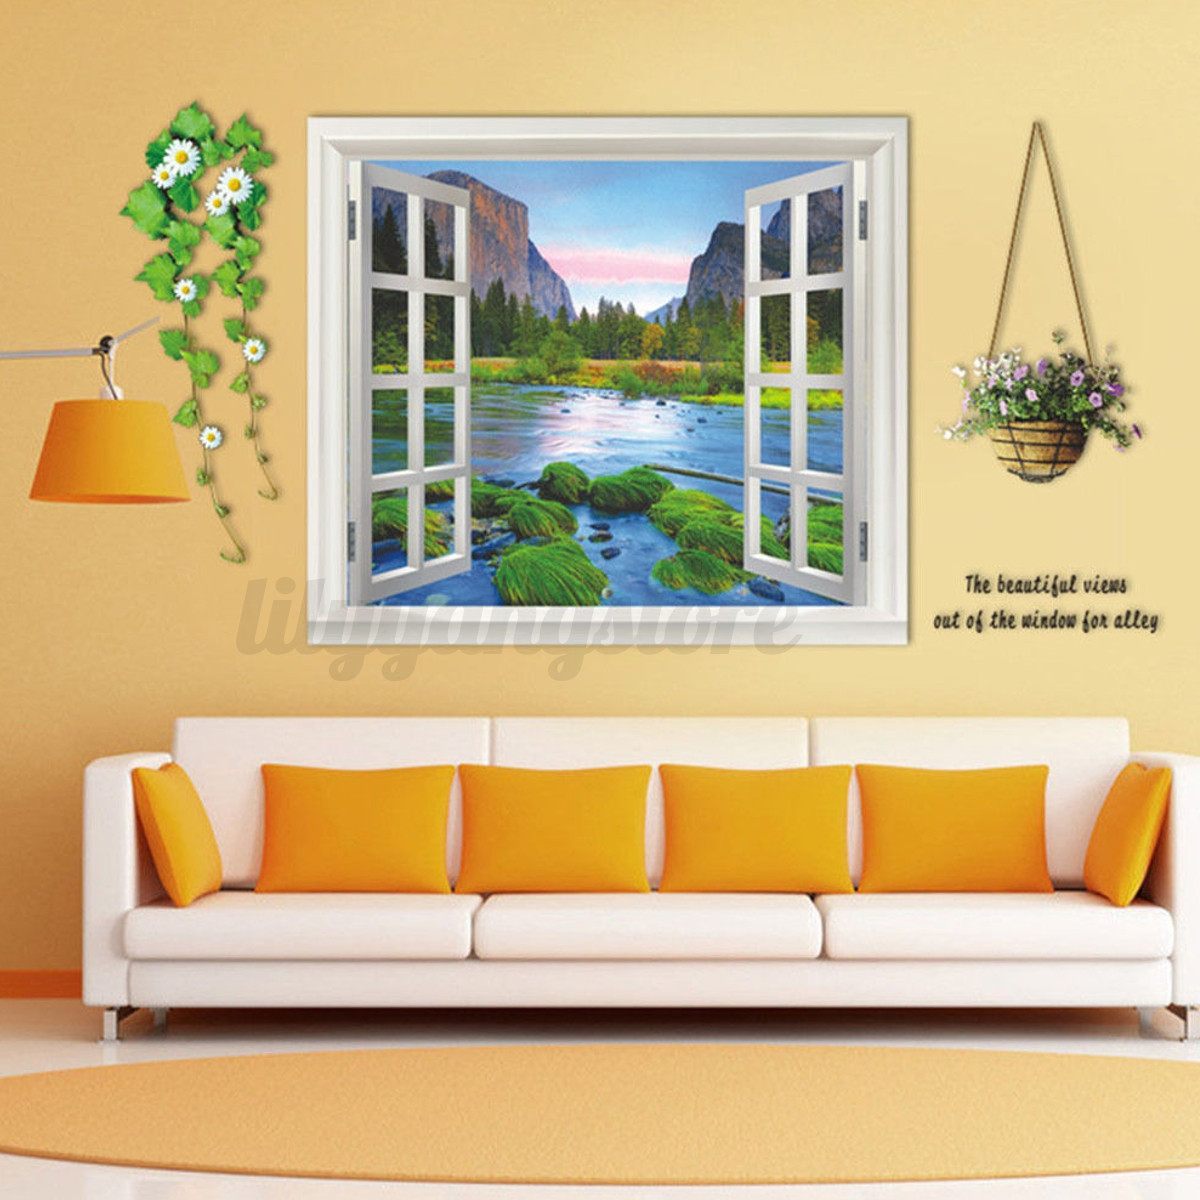 3D Window View Removable Landscape Vinyl Sticker Mural Wall Decal ...